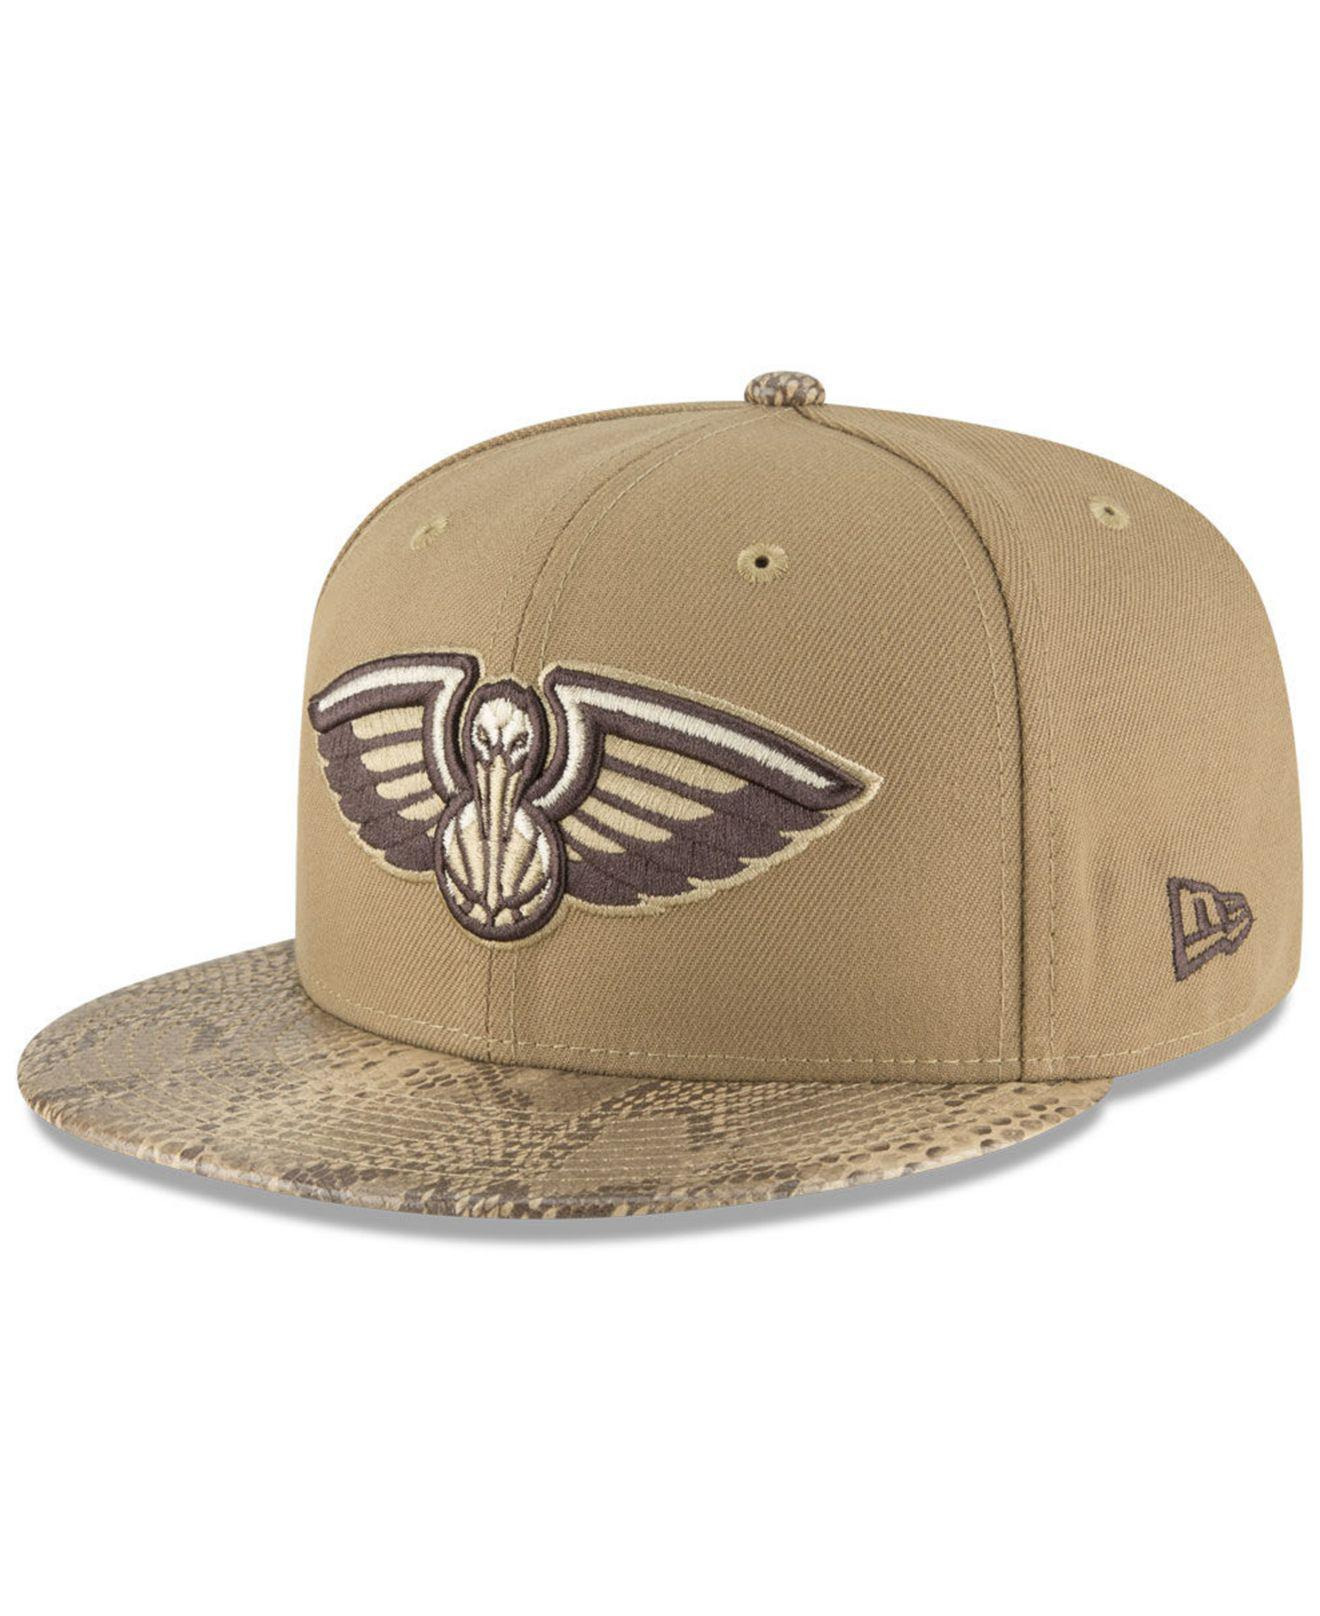 check out 03107 65b72 KTZ. Men s New Orleans Pelicans Snakeskin Sleek 59fifty Fitted Cap